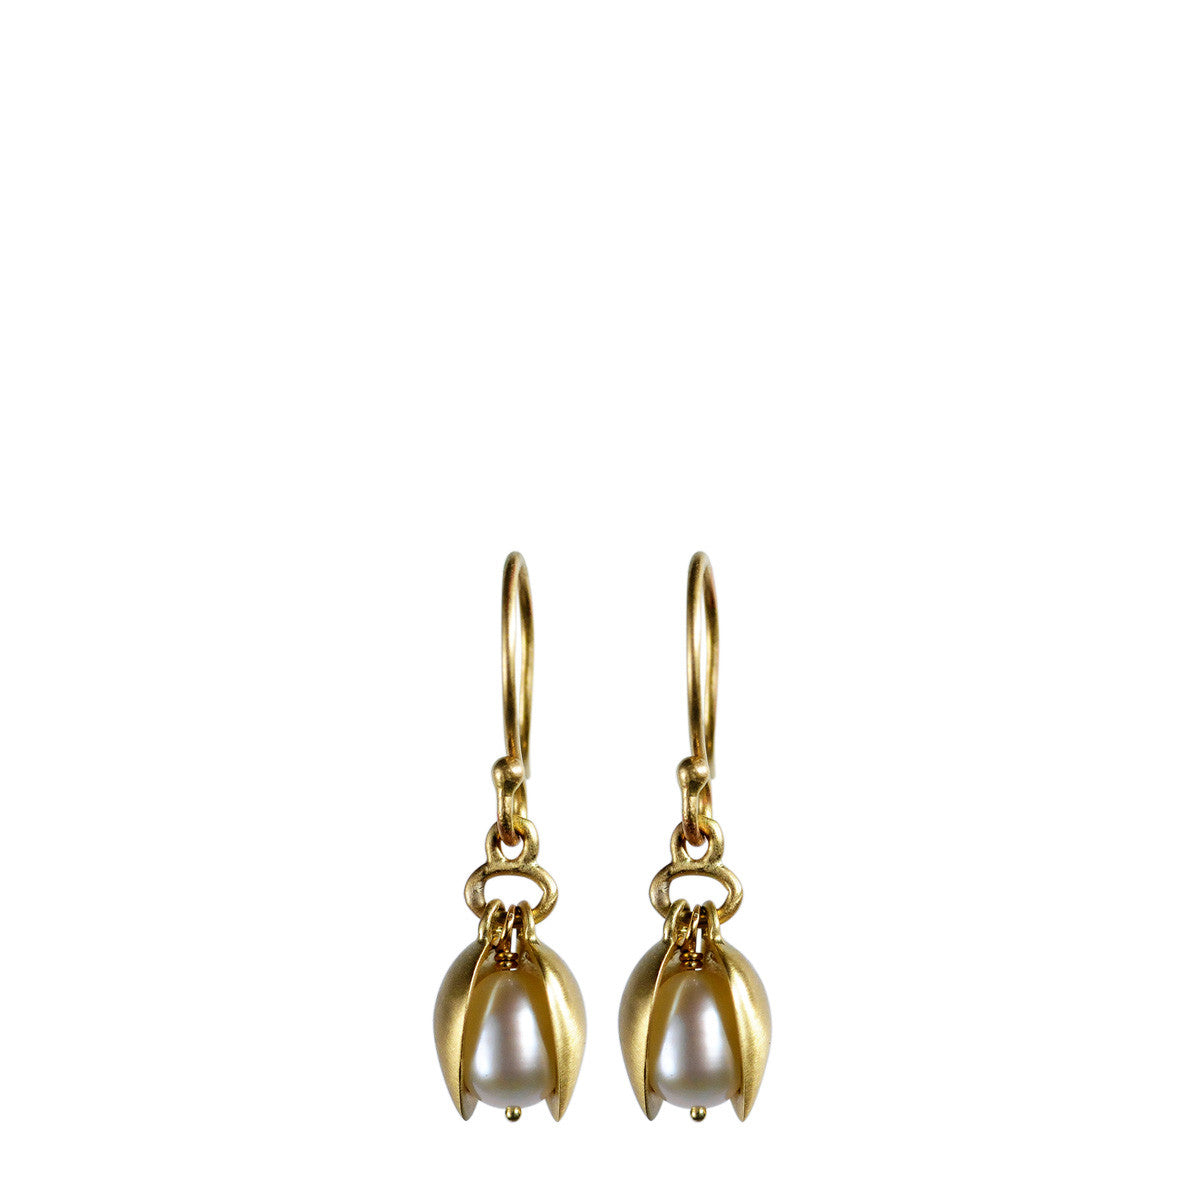 18K Gold Small Pod Earrings with Pearls